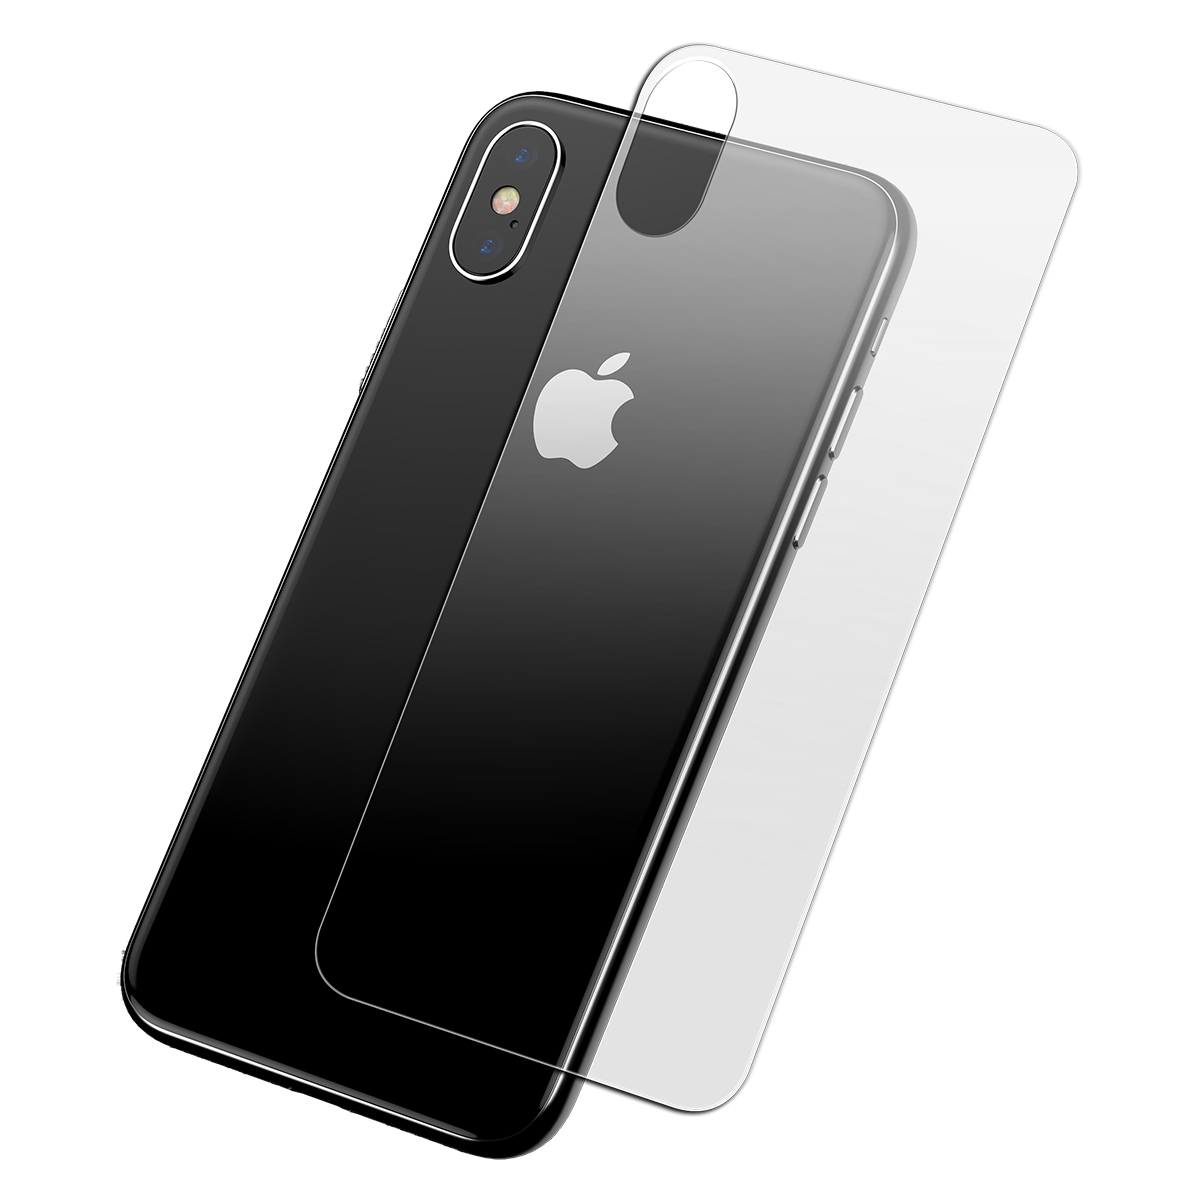 buy online ca400 a6023 Baseus 0.3mm Scratch Resistant Anti Fingerprint All Glass Back Screen  Protector For iPhone XS Max